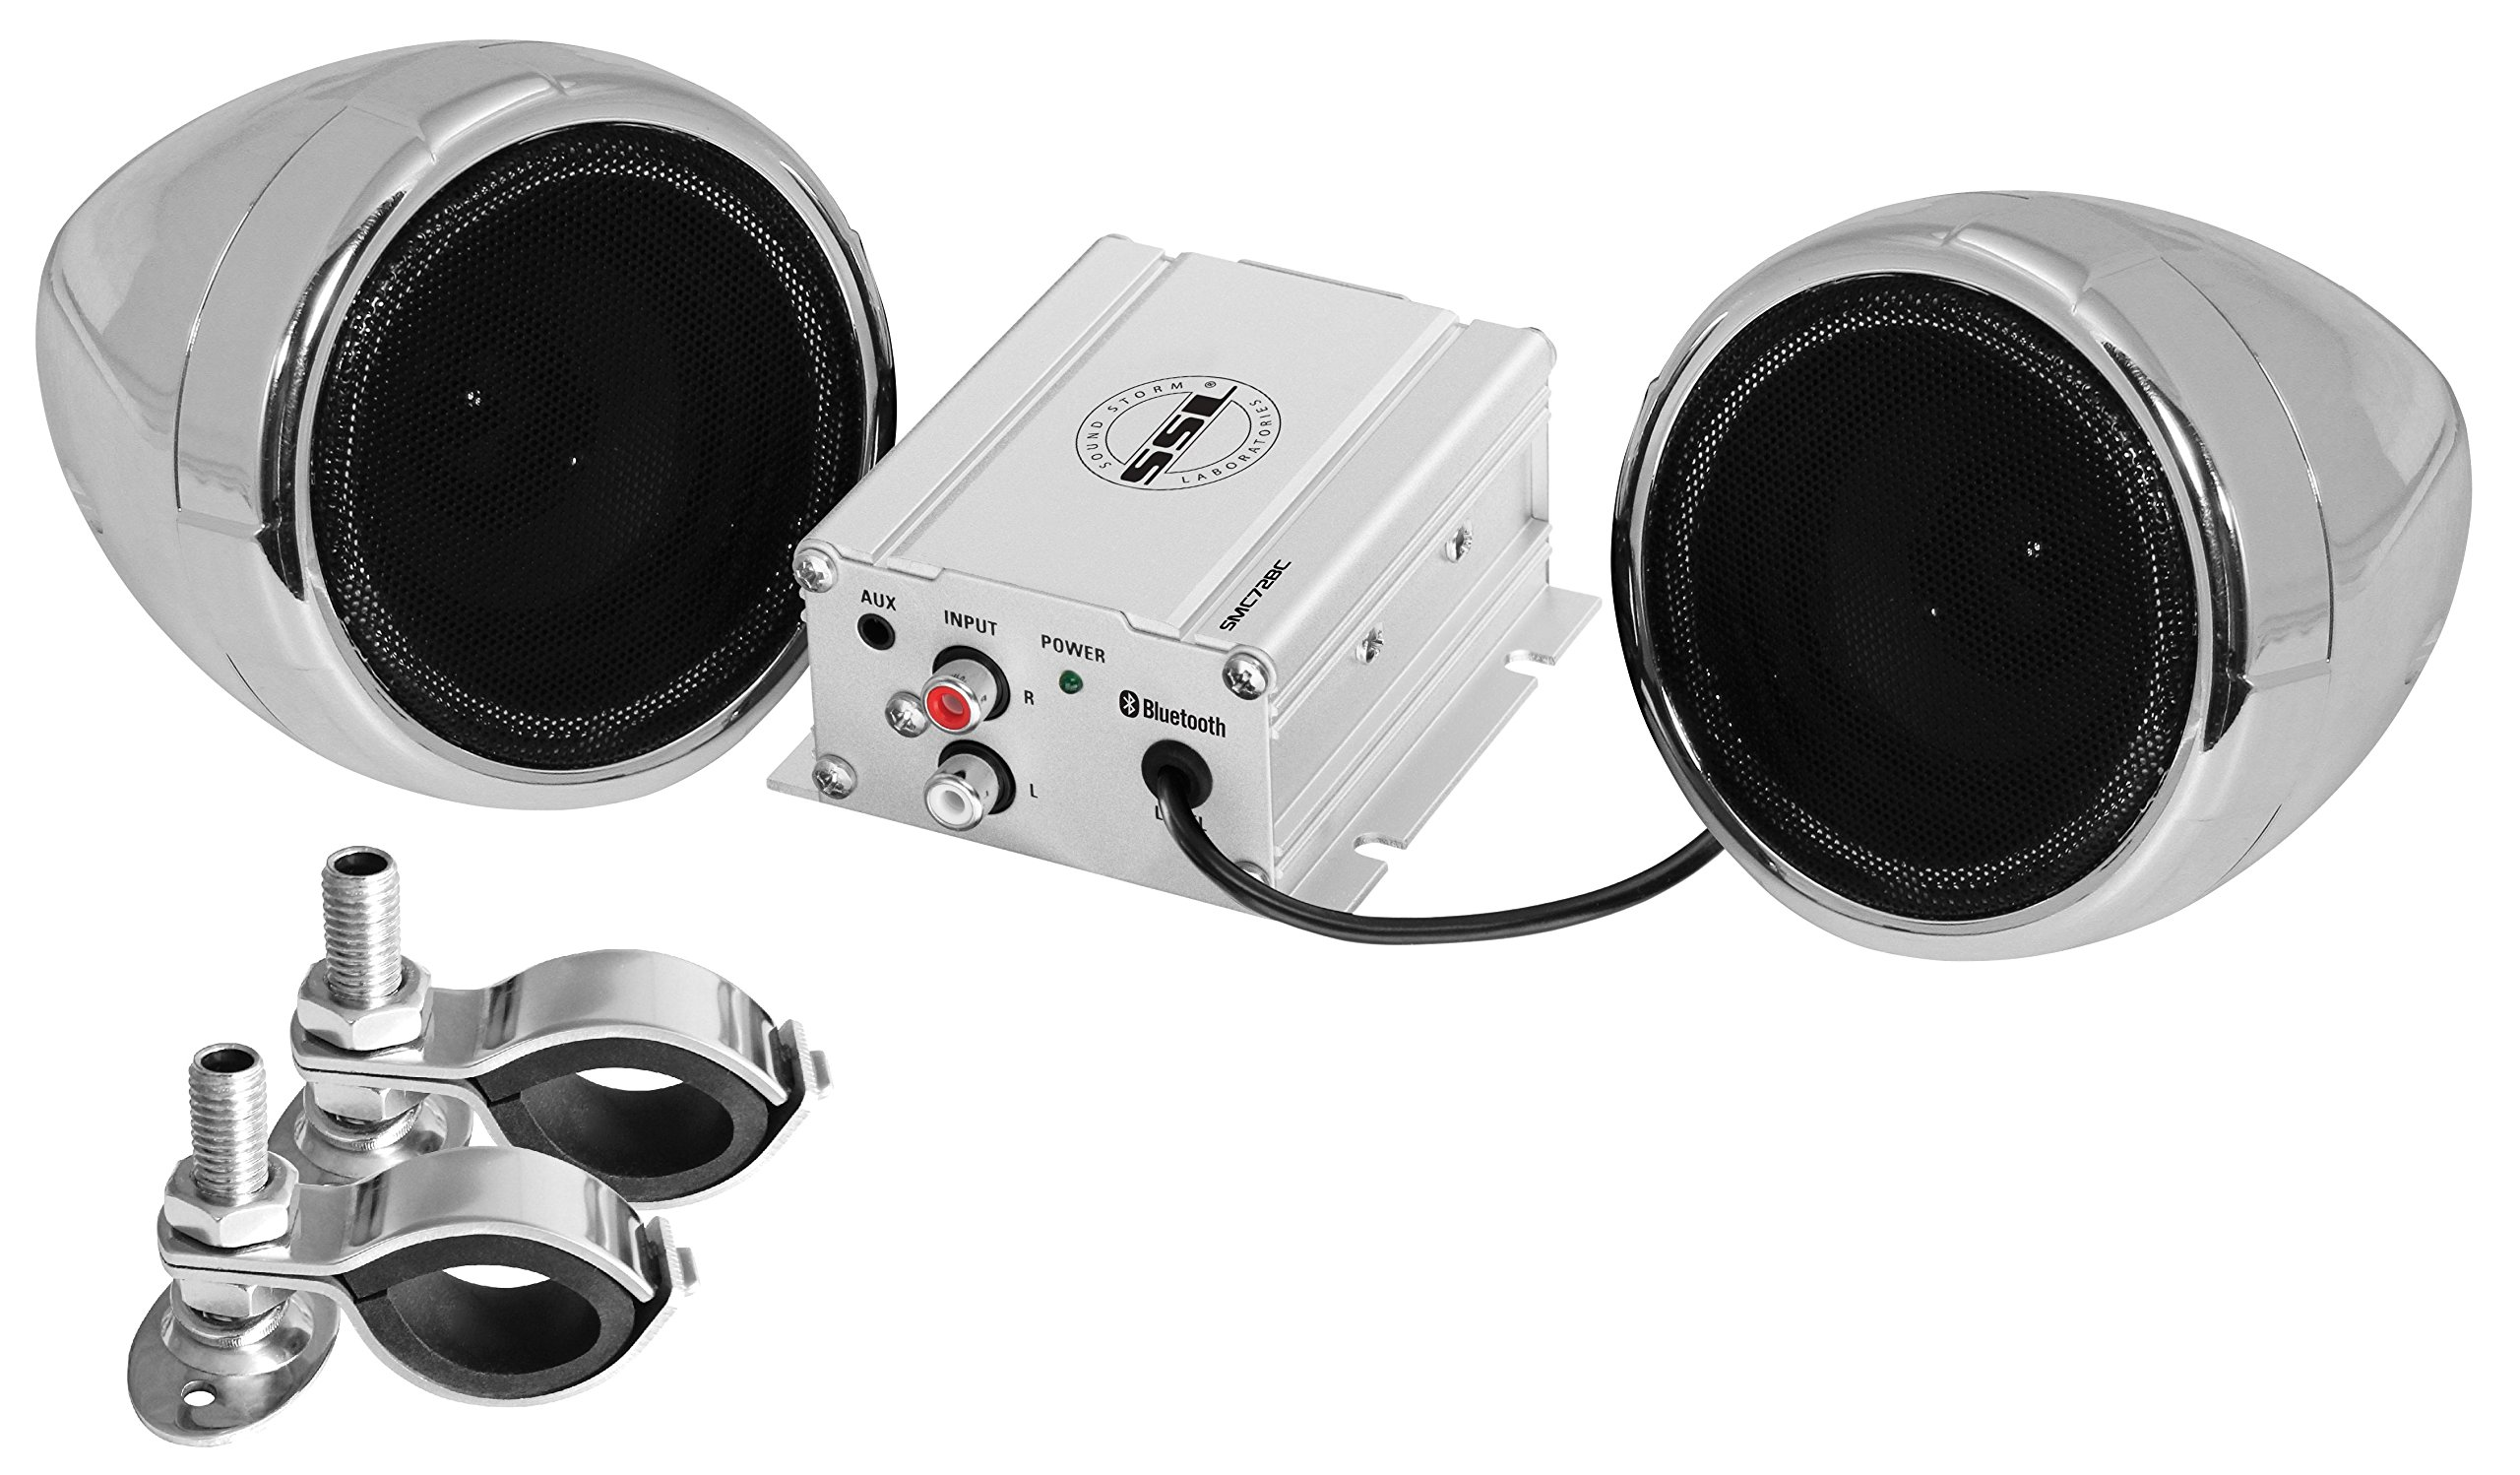 Sound Storm SMC72BC Sound System, Weatherproof, Bluetooth Amplifier, 3 Inch Speakers, Inline Volume Control, Ideal for Motorcycles/ATV and 12 Volt Applications